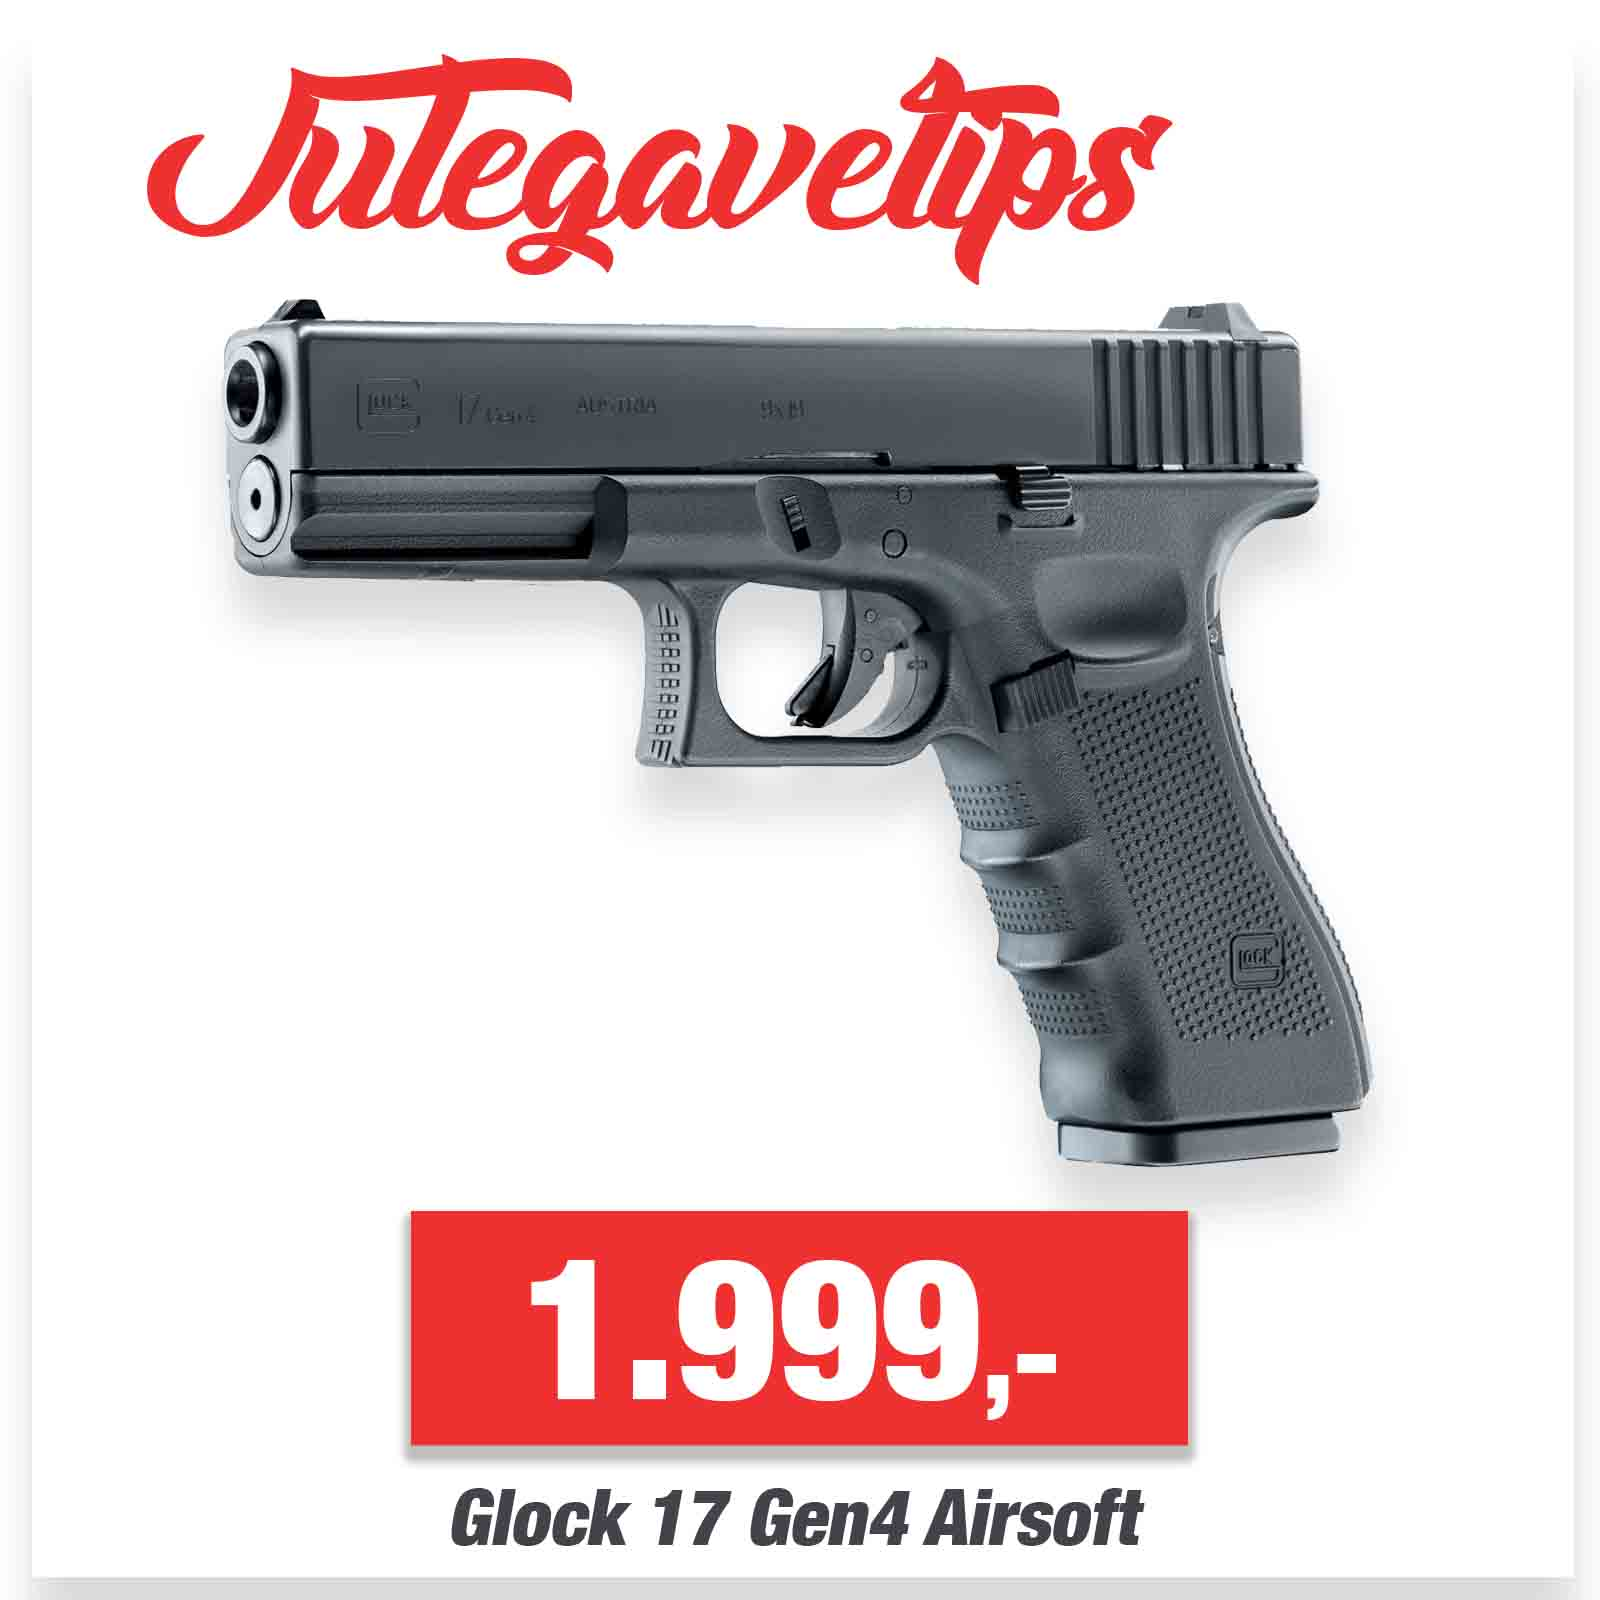 Glock 17 Gen4 Airsoft - Co2 med Blowback - GBB